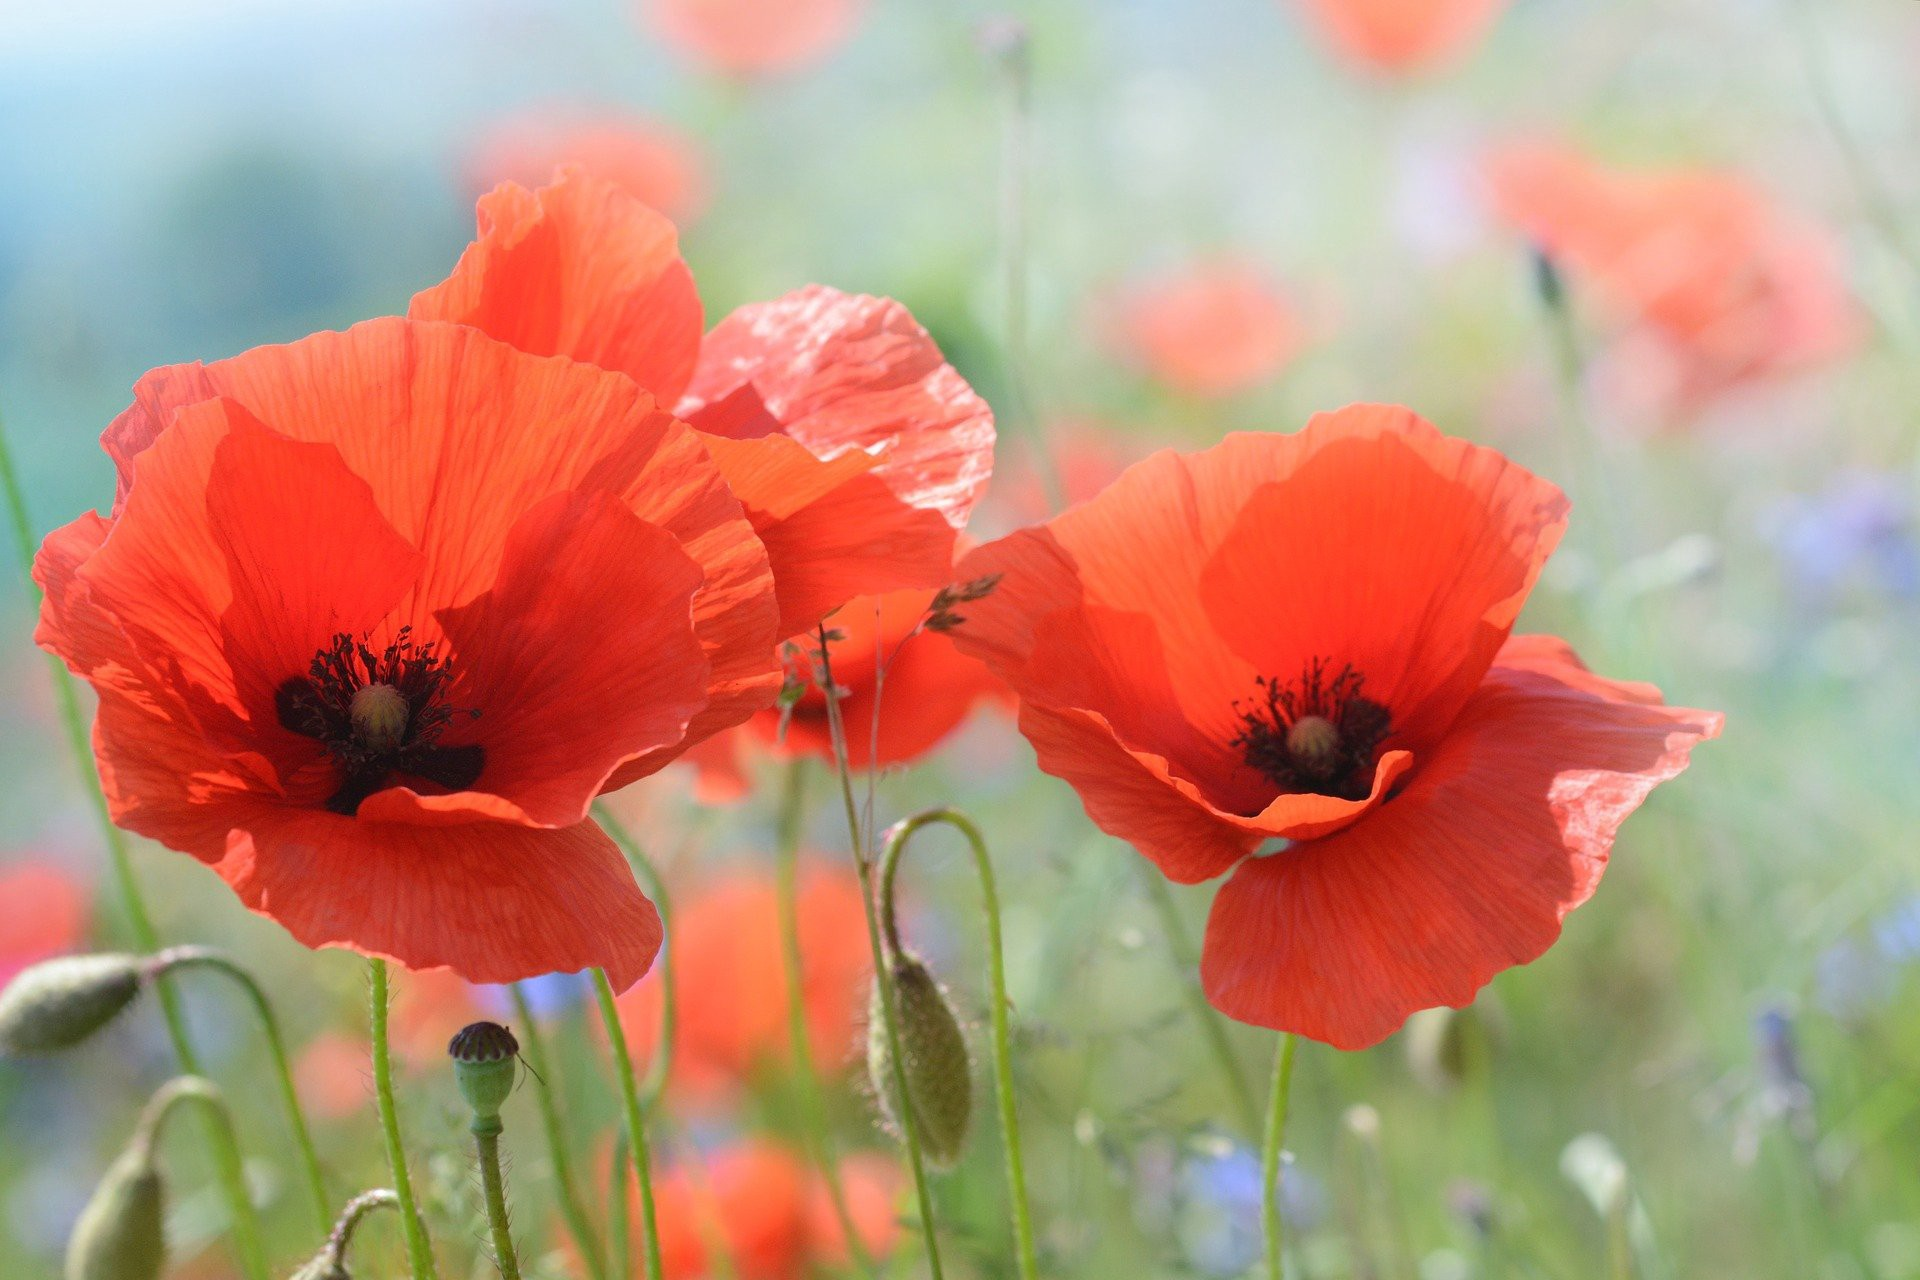 Red poppies growing in a field.